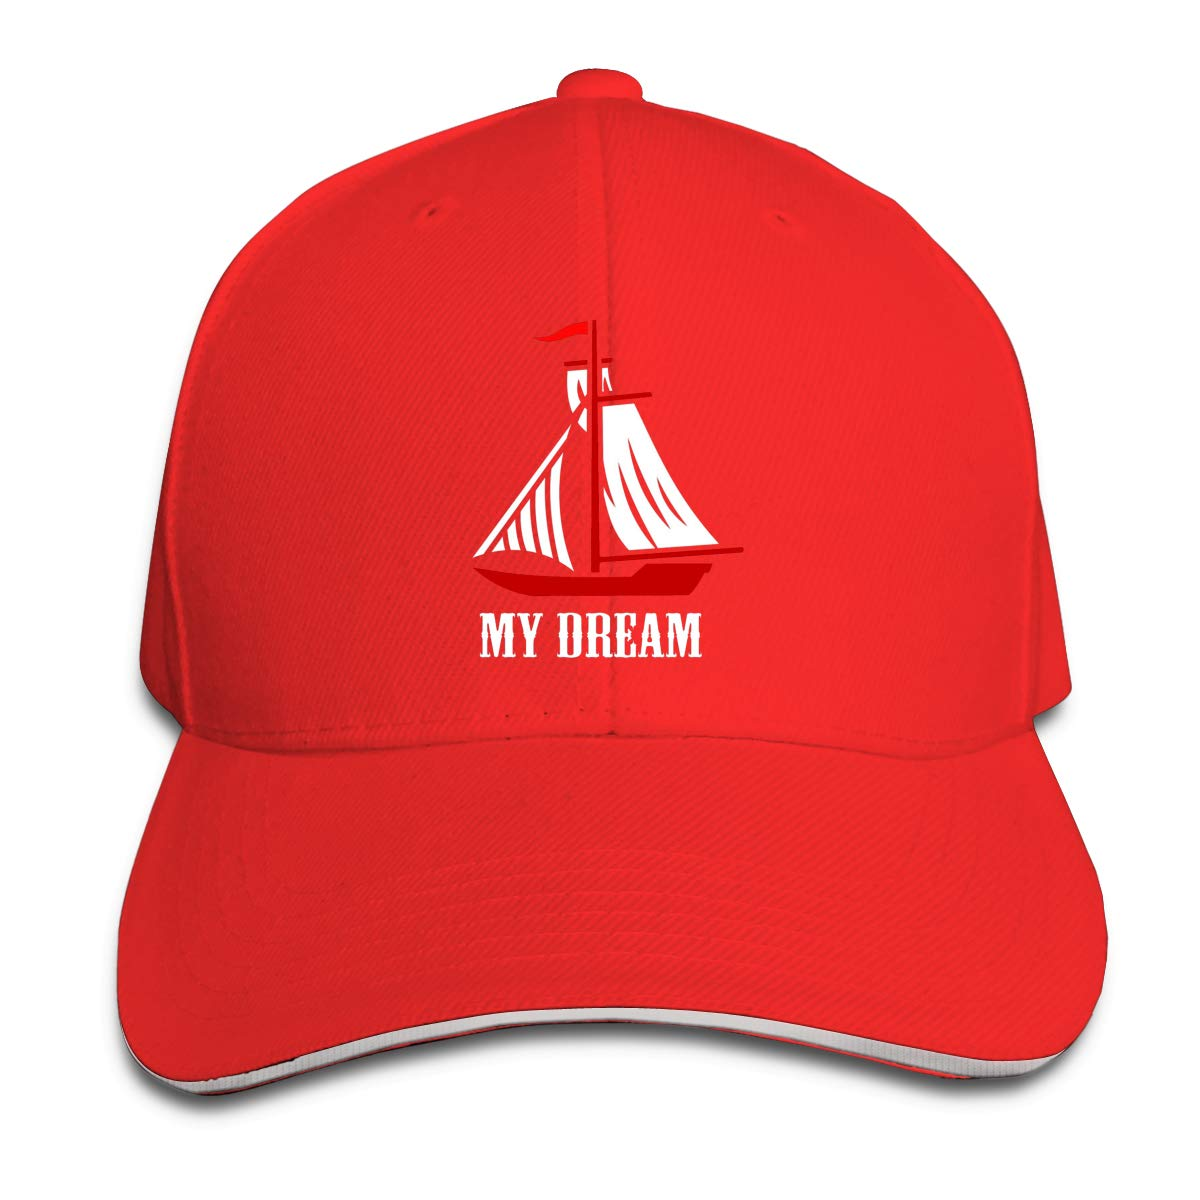 My Dream Sailing Unisex Adult Baseball Caps Adjustable Sandwich Caps Jeans Caps Adjustable Denim Trucker Cap